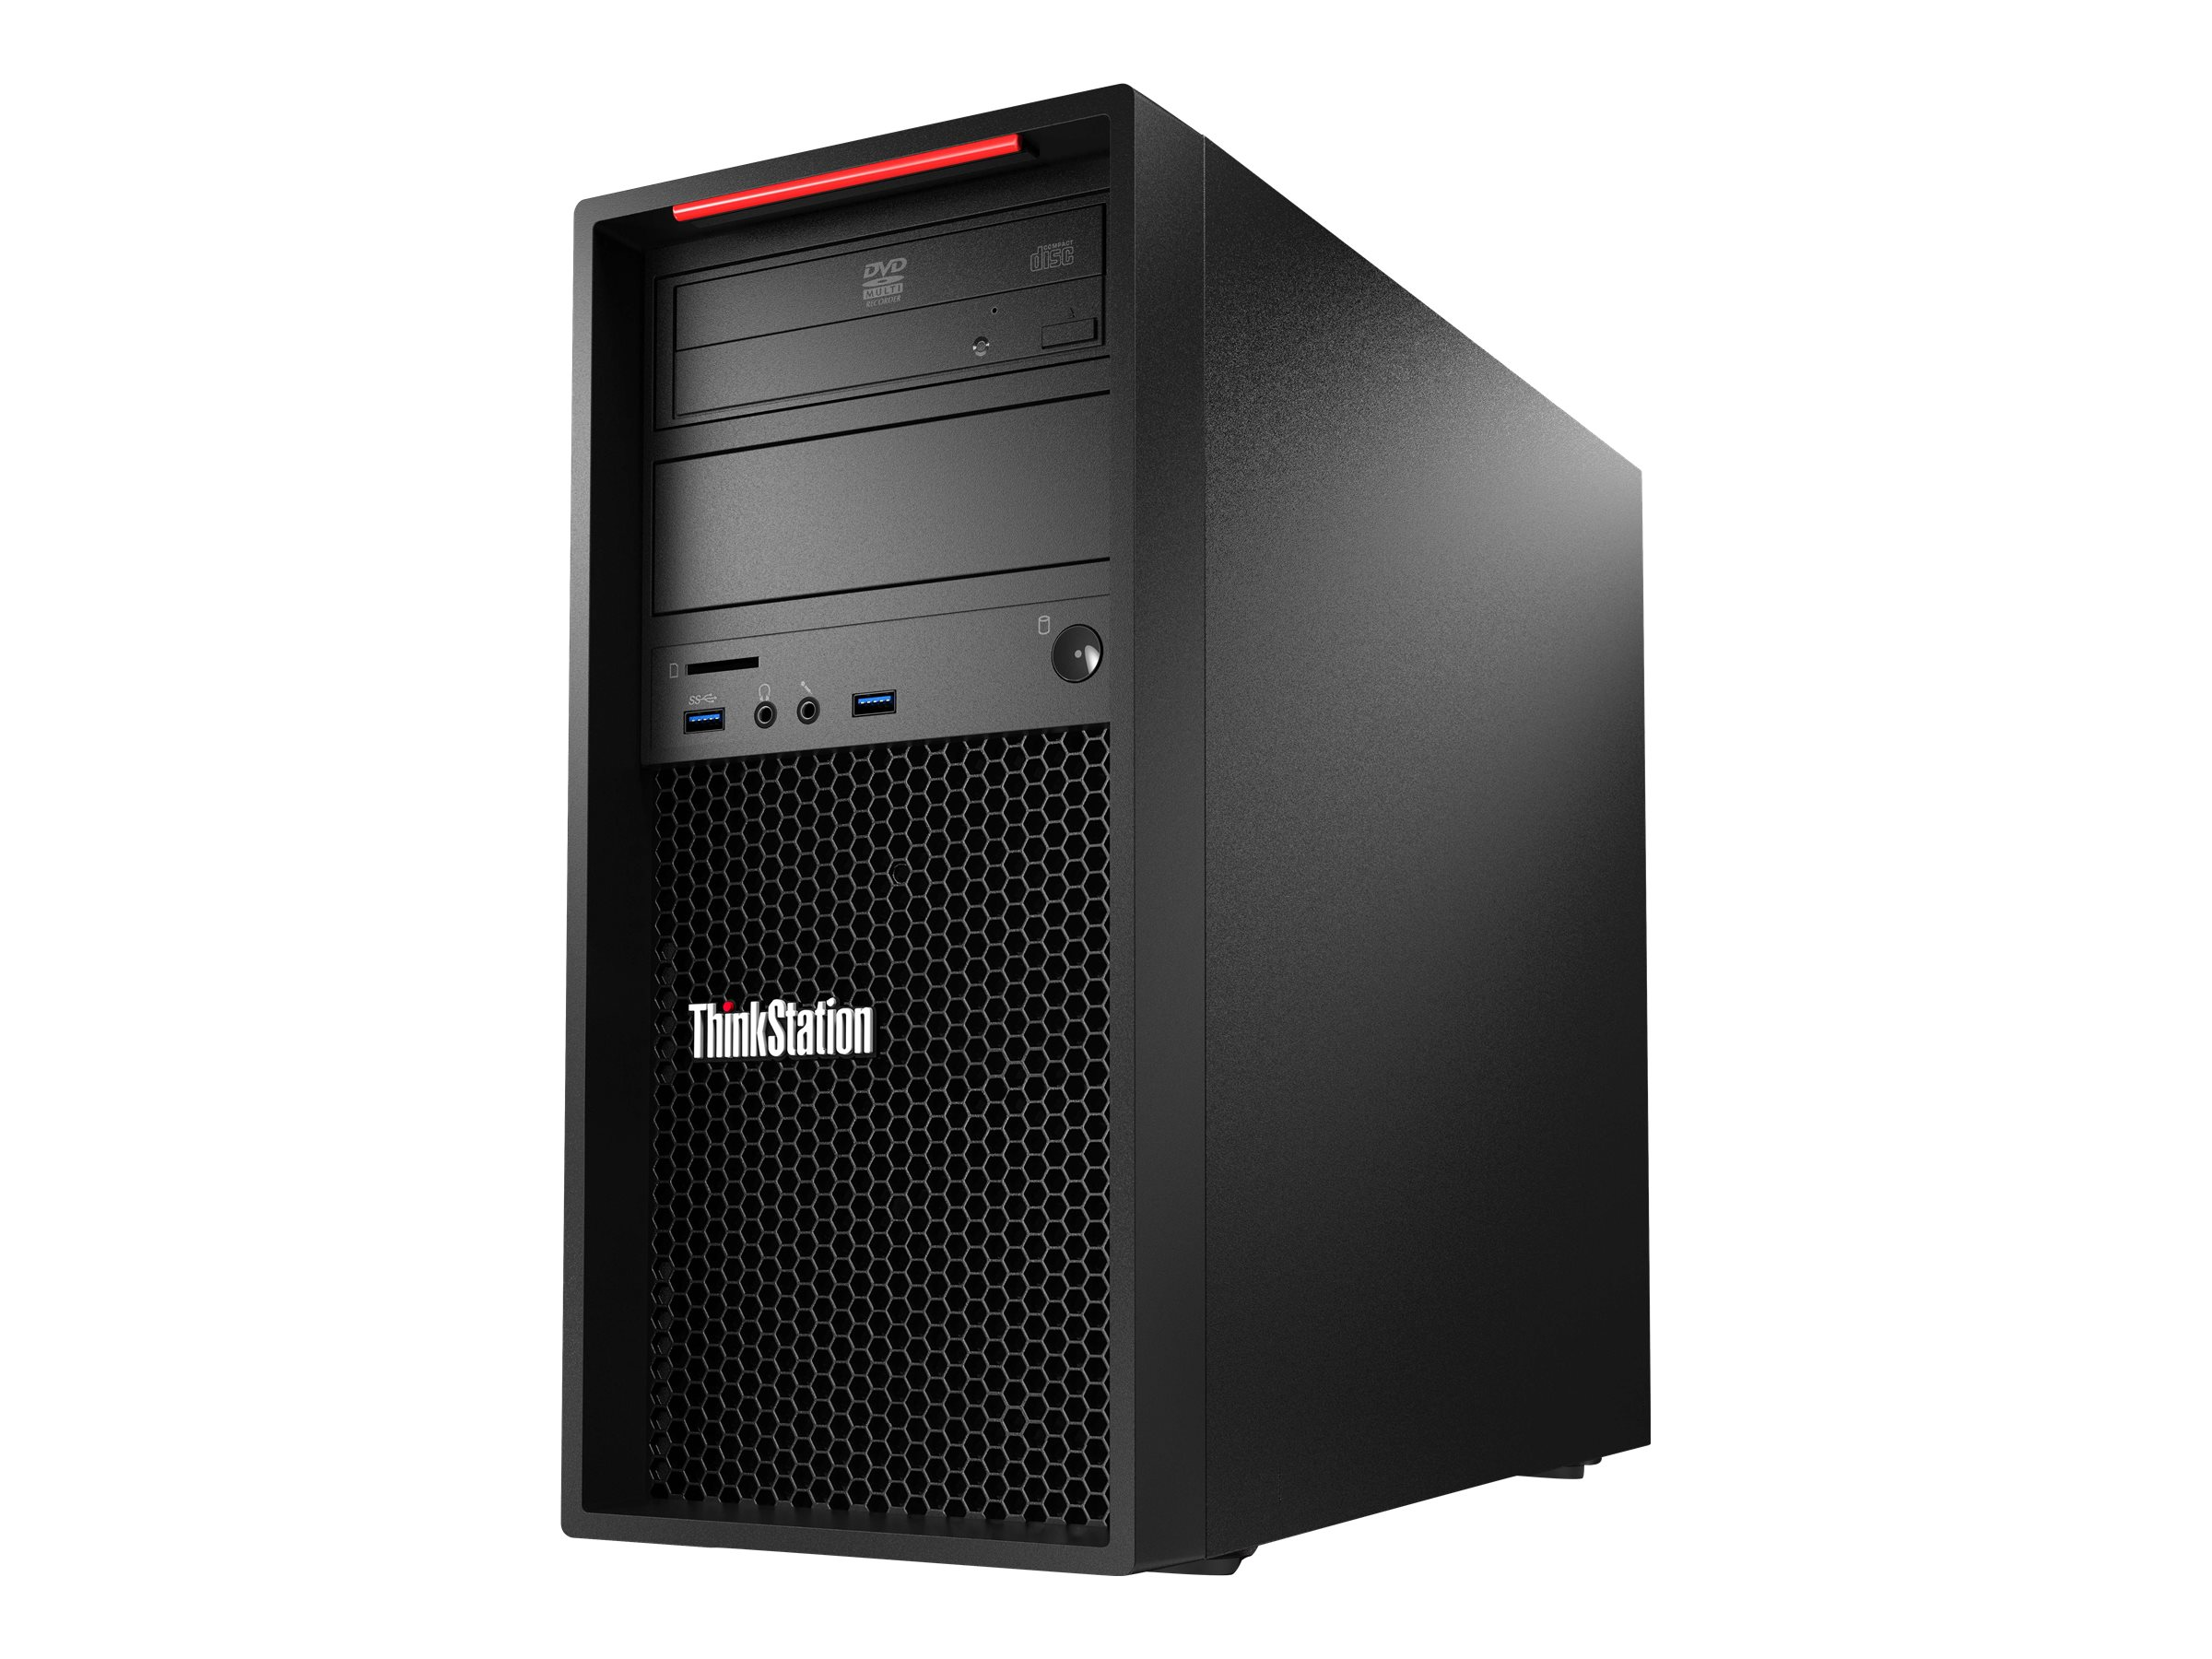 Lenovo ThinkStation P310, 64-bit, Festplatte, Intel Xeon E3 v5, DVD±RW, Schwarz, Intel HD Graphics P530